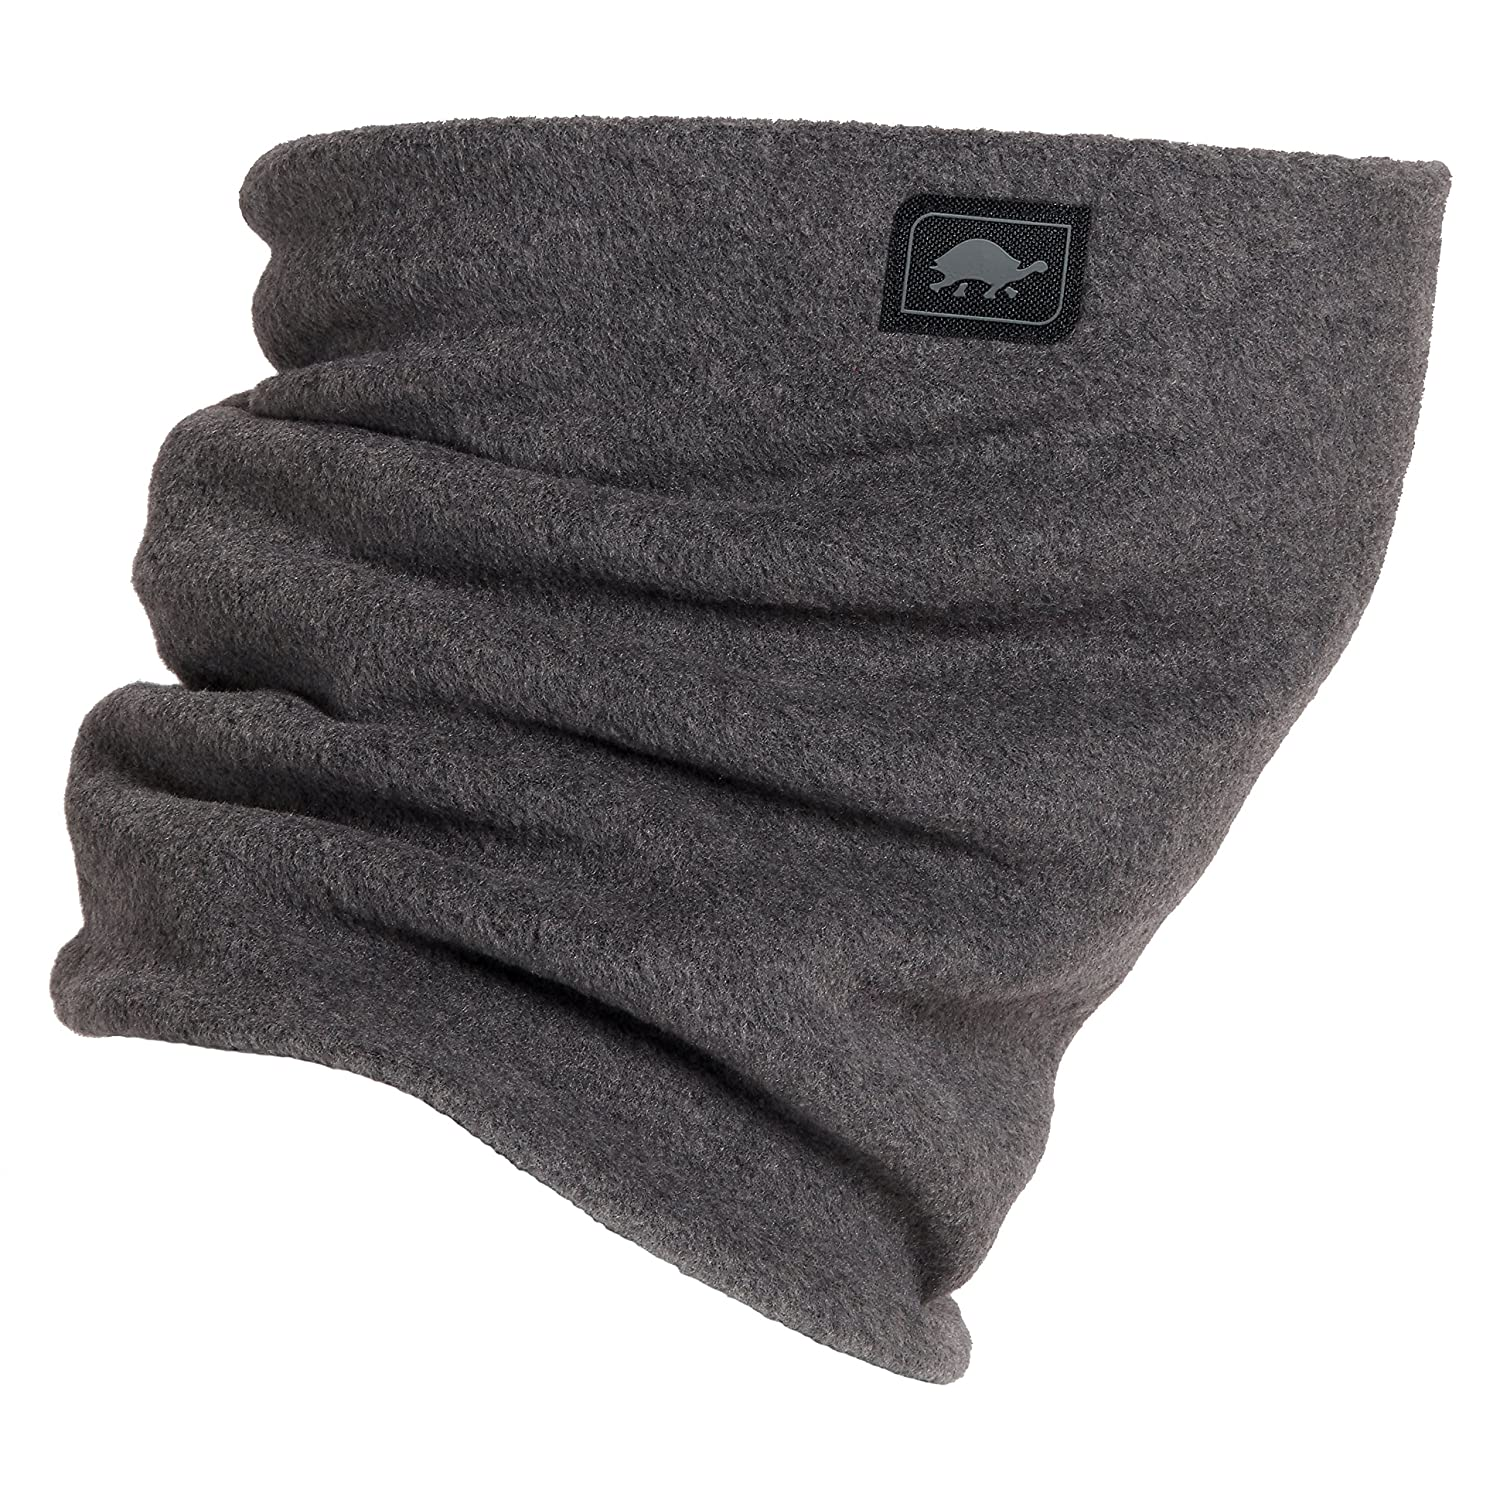 Turtle Fur Double-Layer Neck Warmer, Chelonia 150 Fleece, Charcoal FBA_10136429